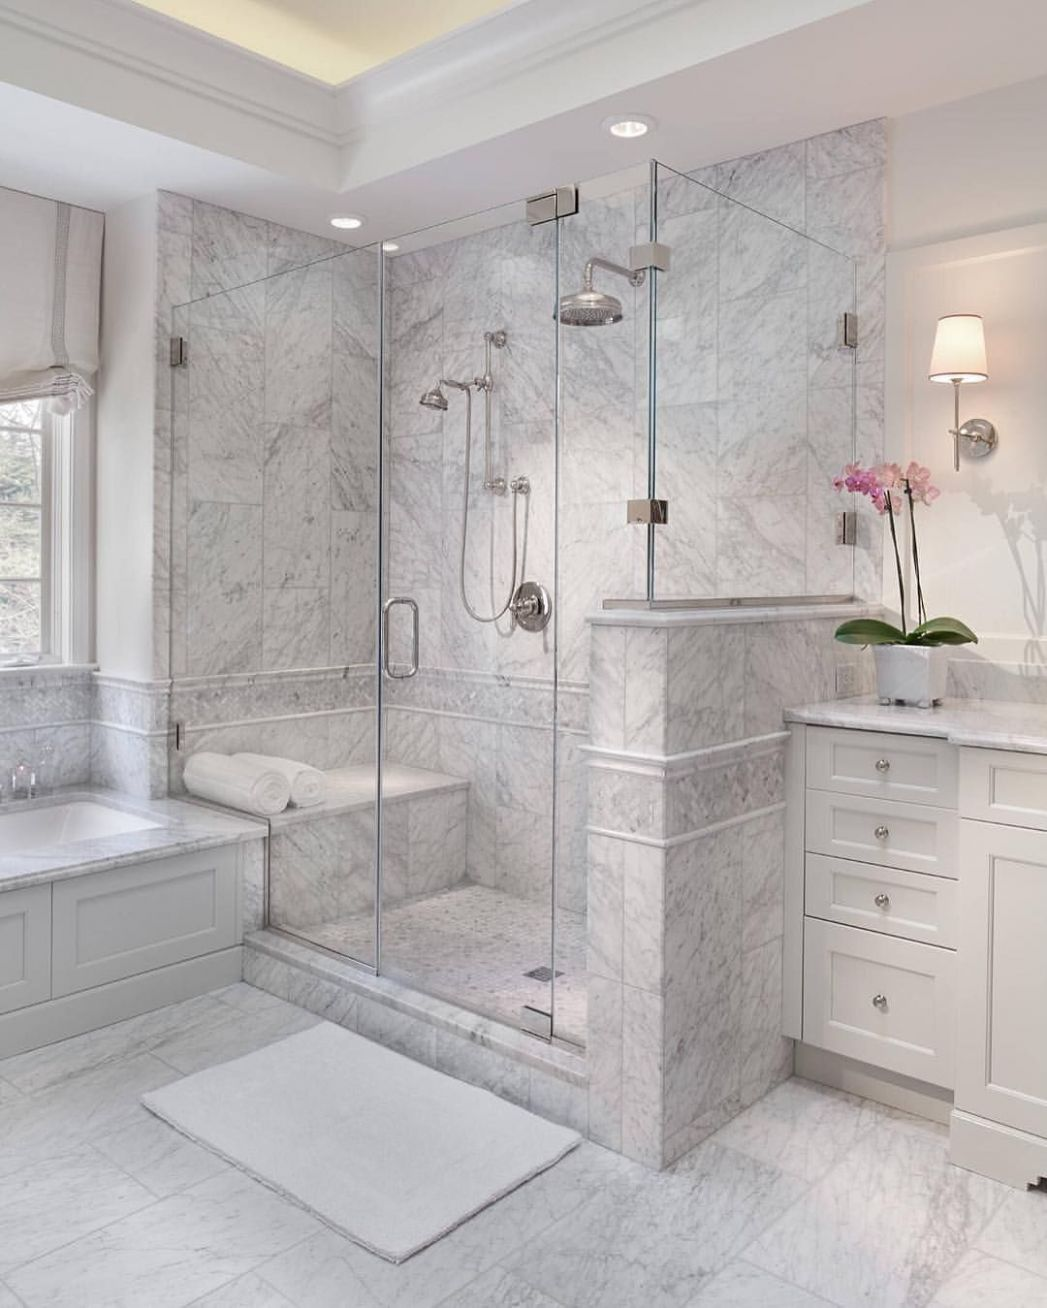 Your Guide to small bathroom ideas south africa for your home ..